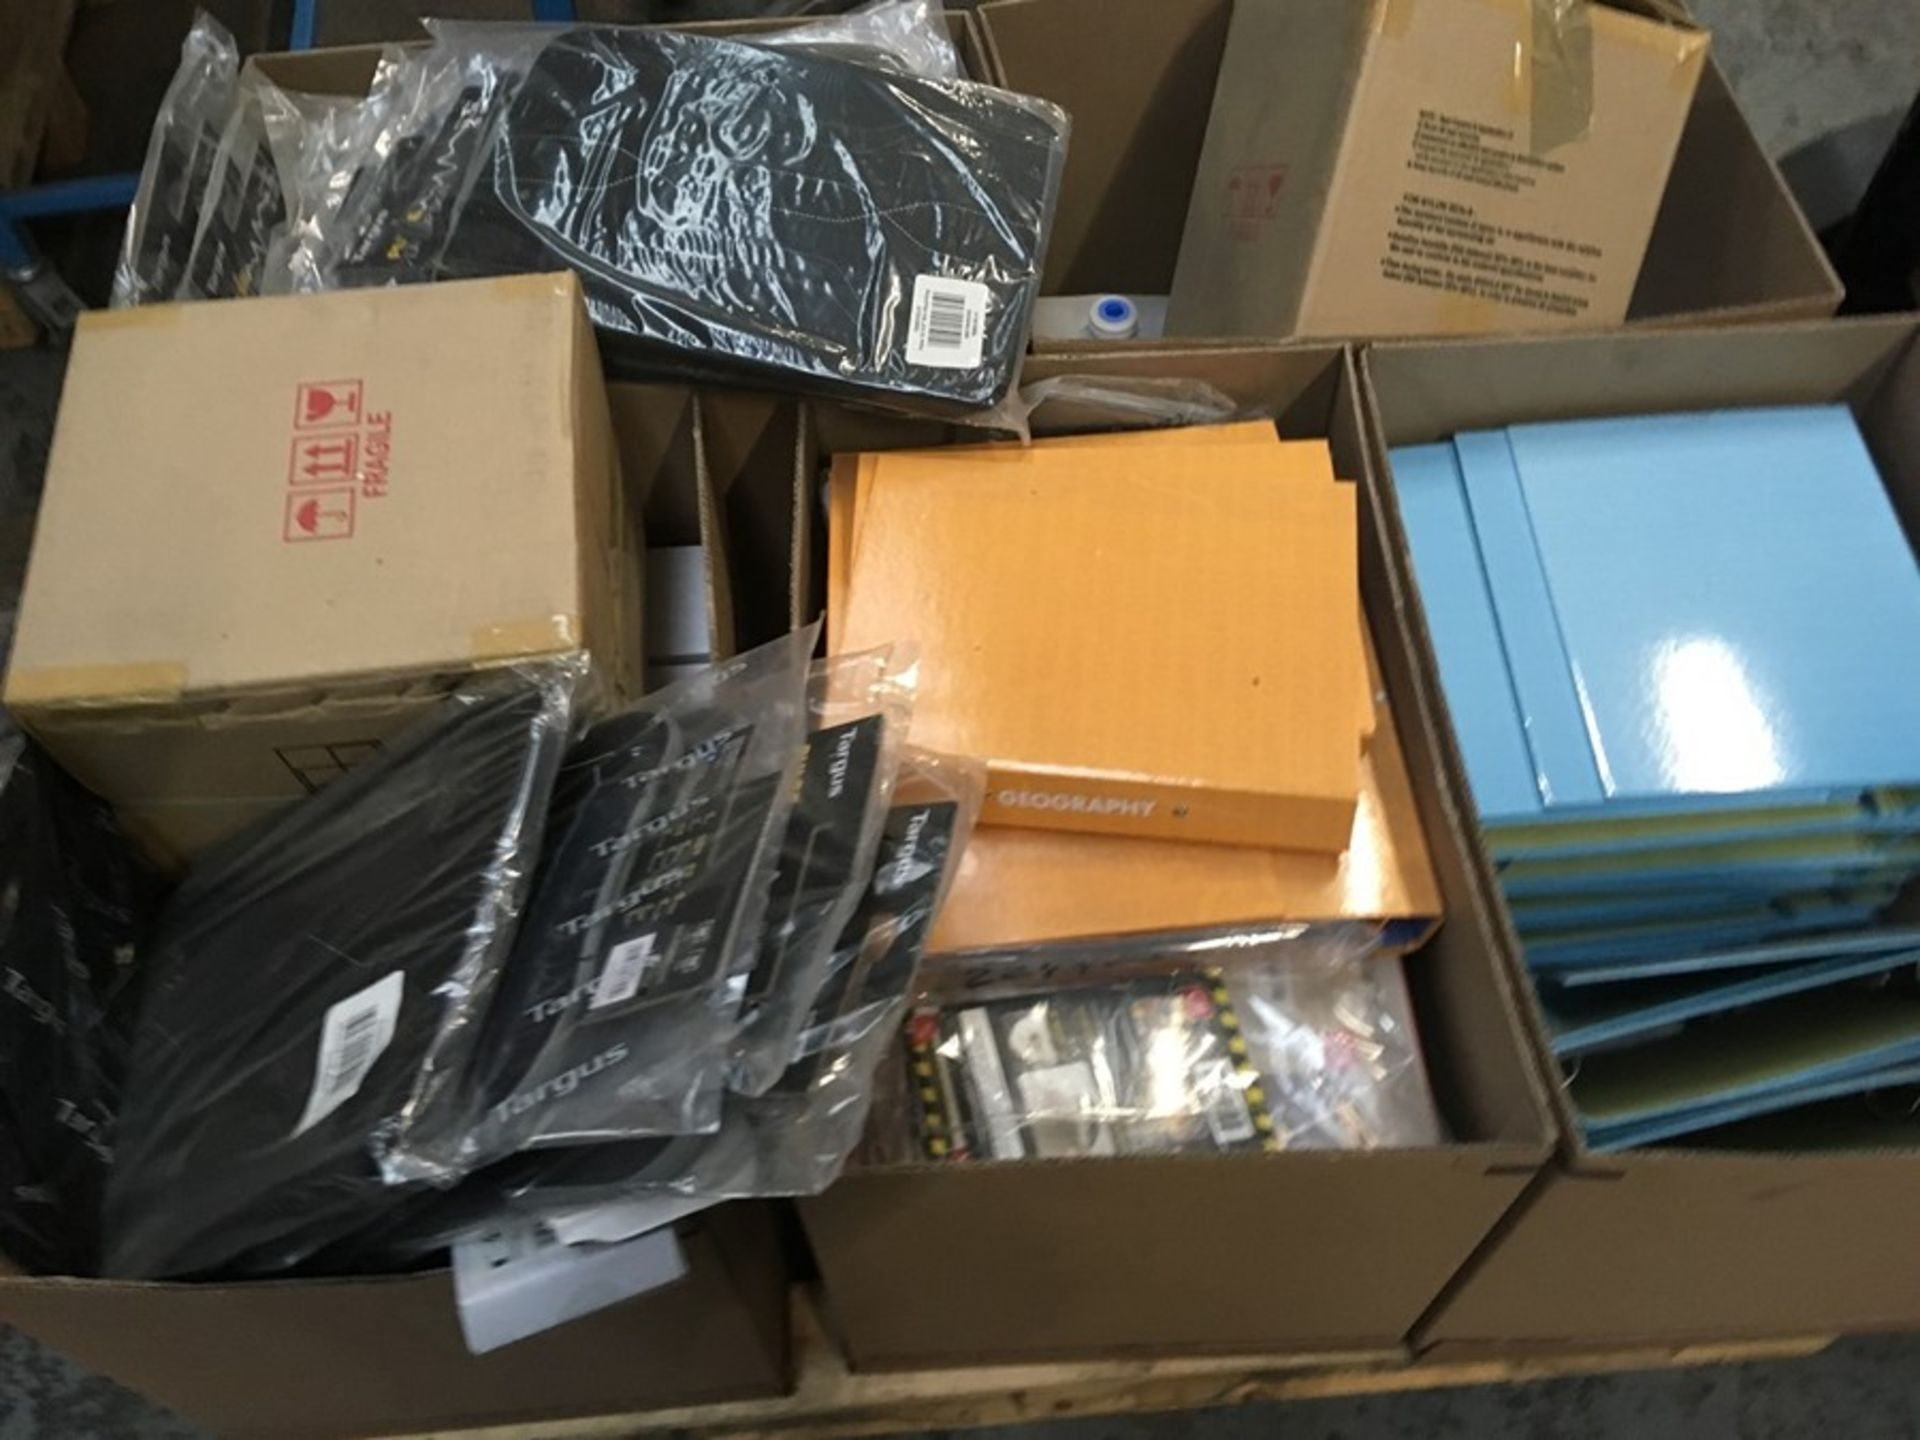 Lotto 85 - 1 LOT TO CONTAIN ASSORTED STATIONARY EQUIPMENT / INCLUDES ASSORTED FOLDERS, SECURITY TAGS, HERMA